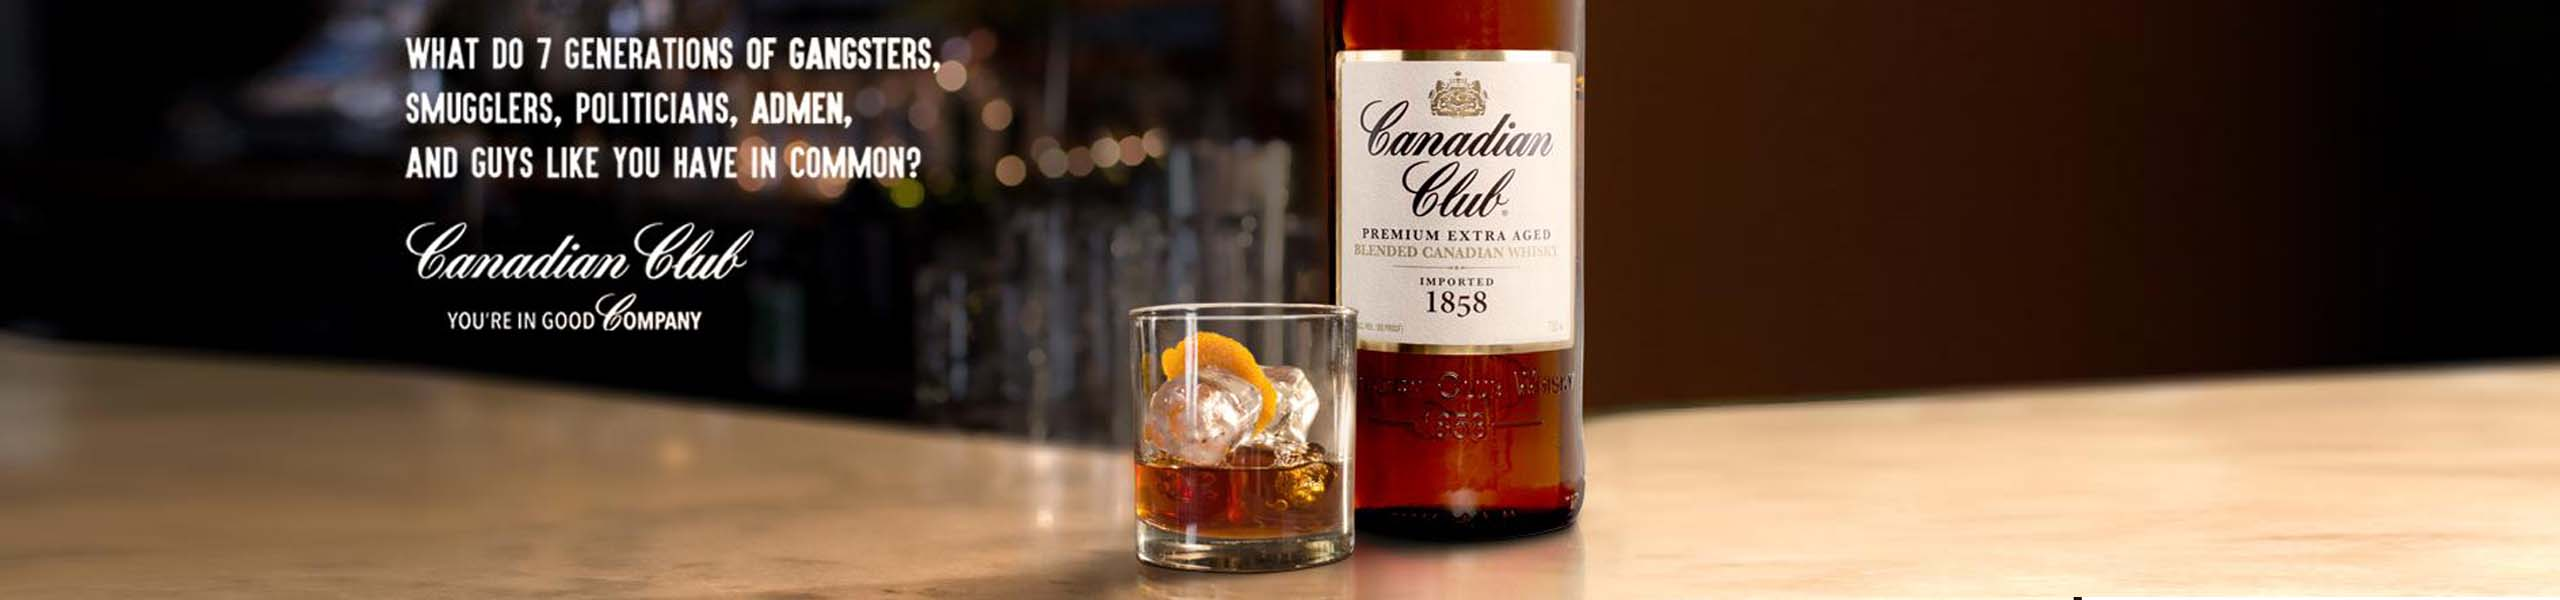 Canadian Club Párlatok